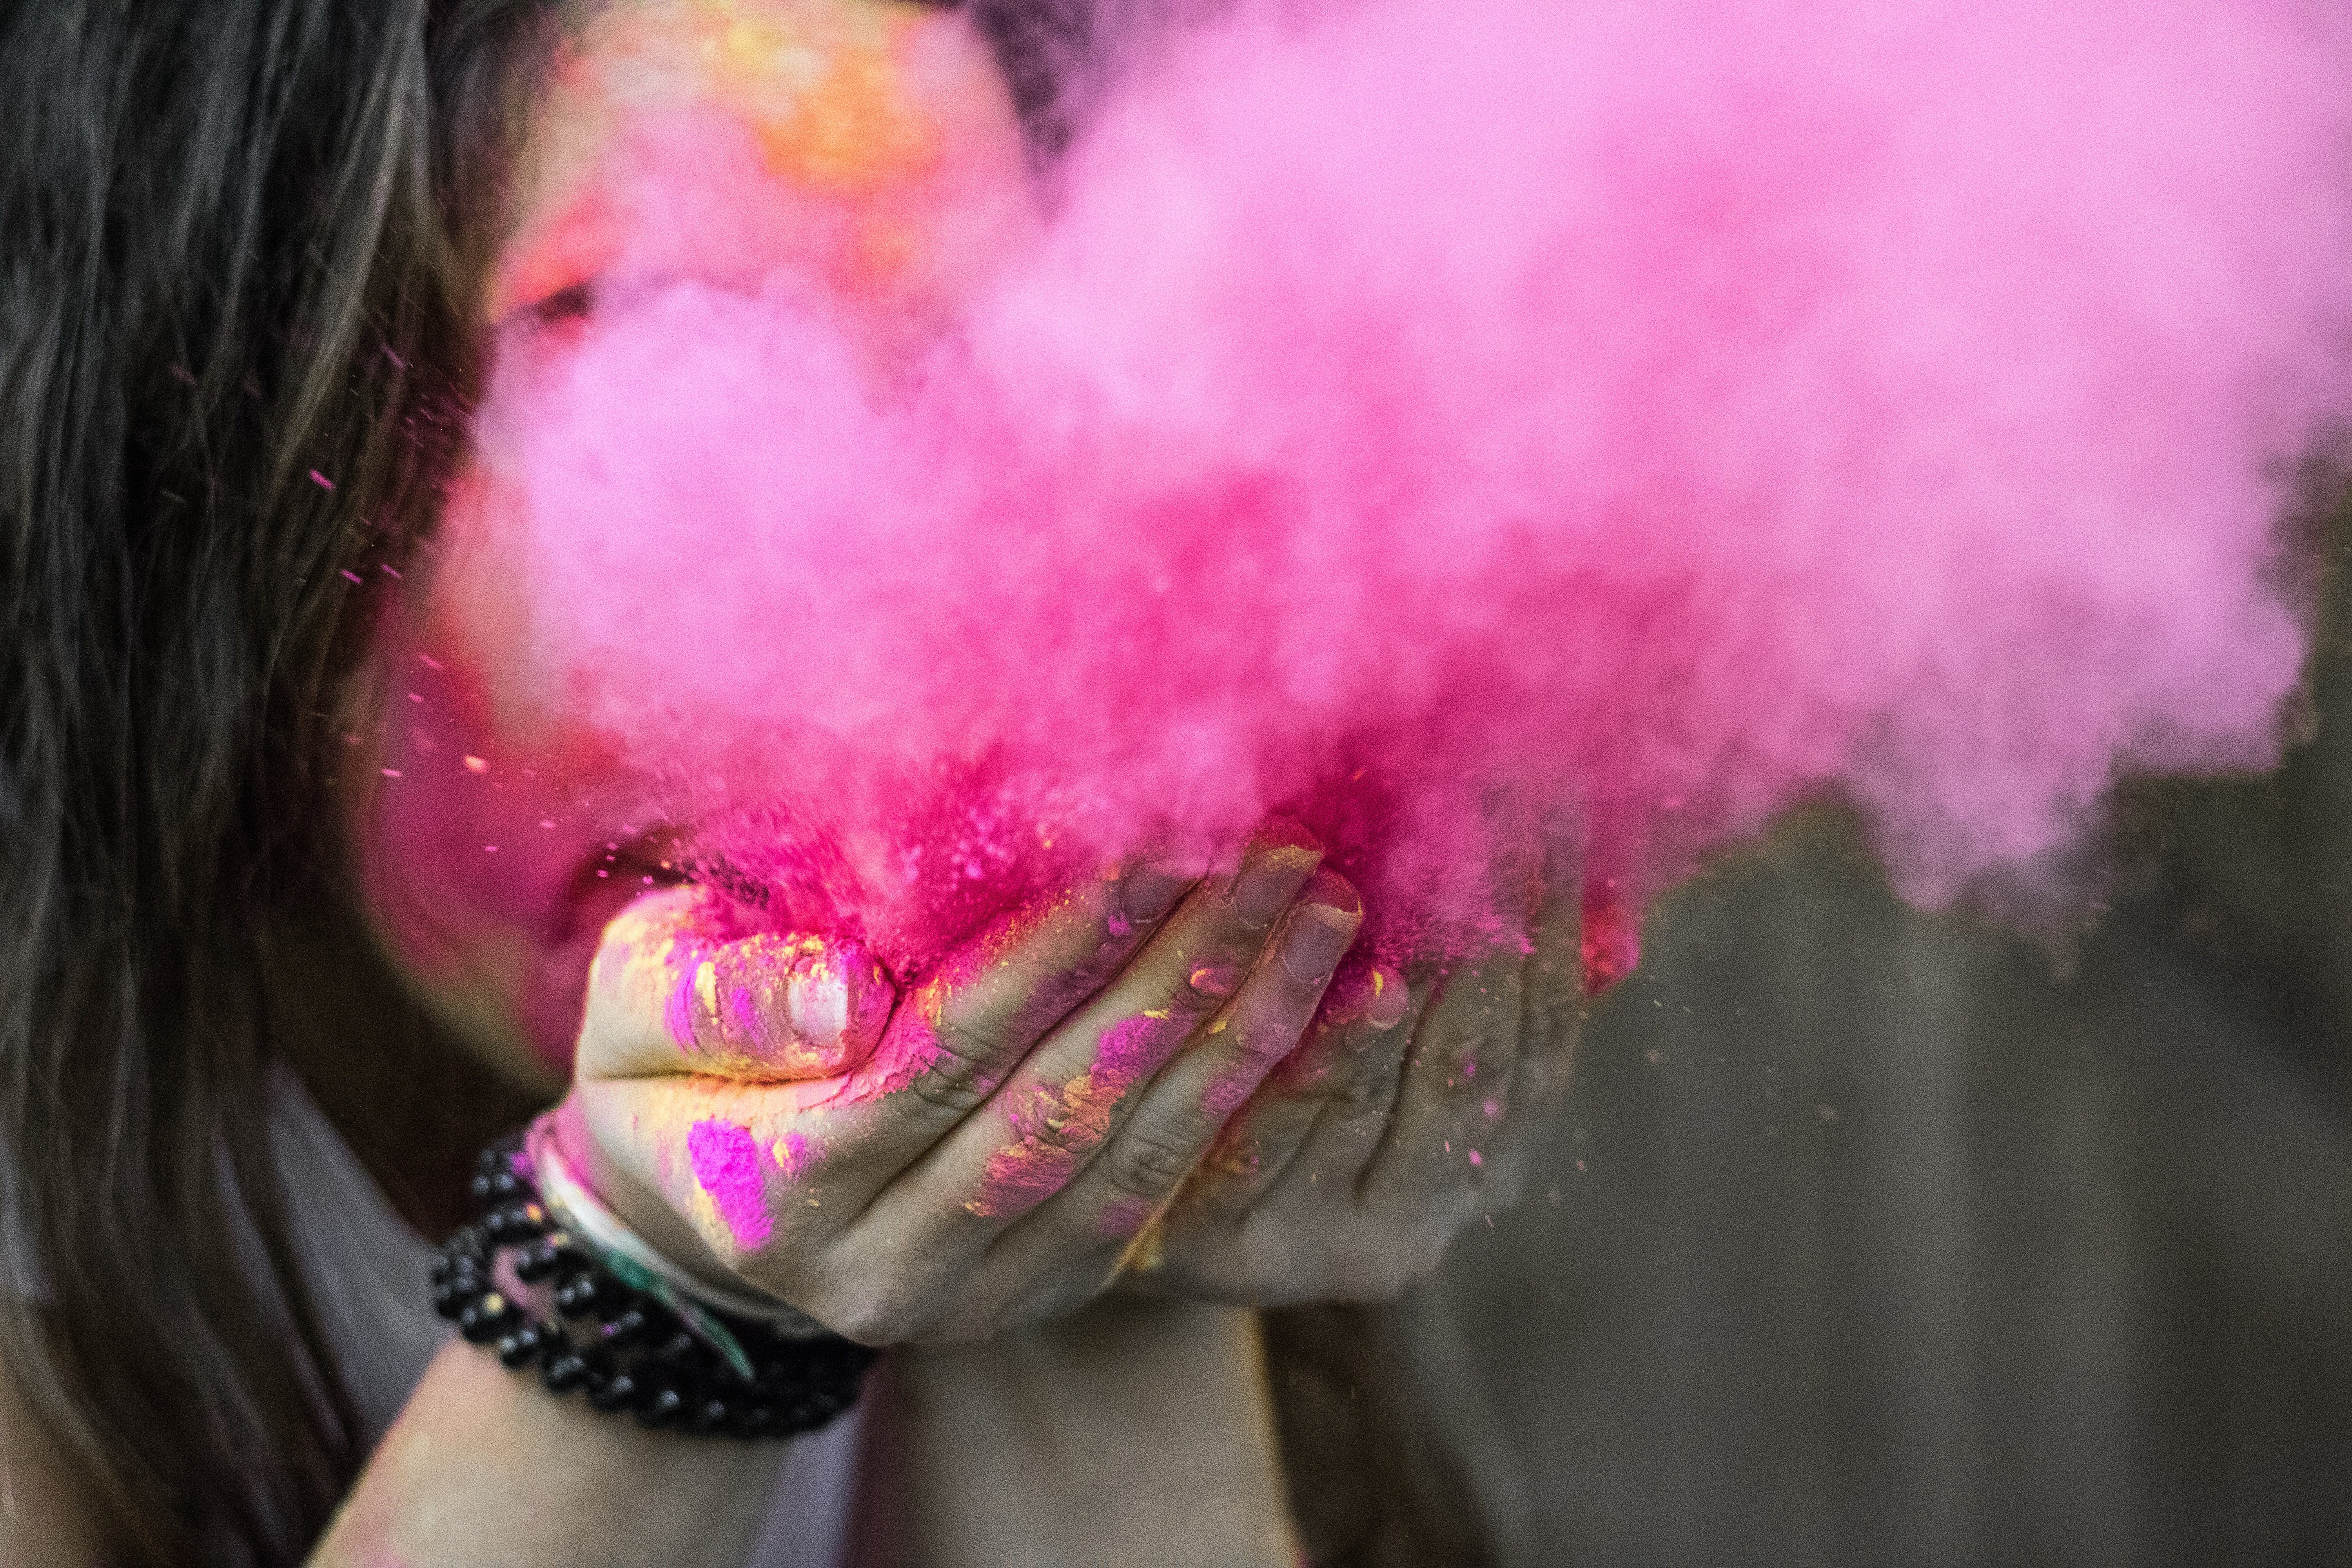 A girl blowing out pink powder so that it creates a pink smoke cloud